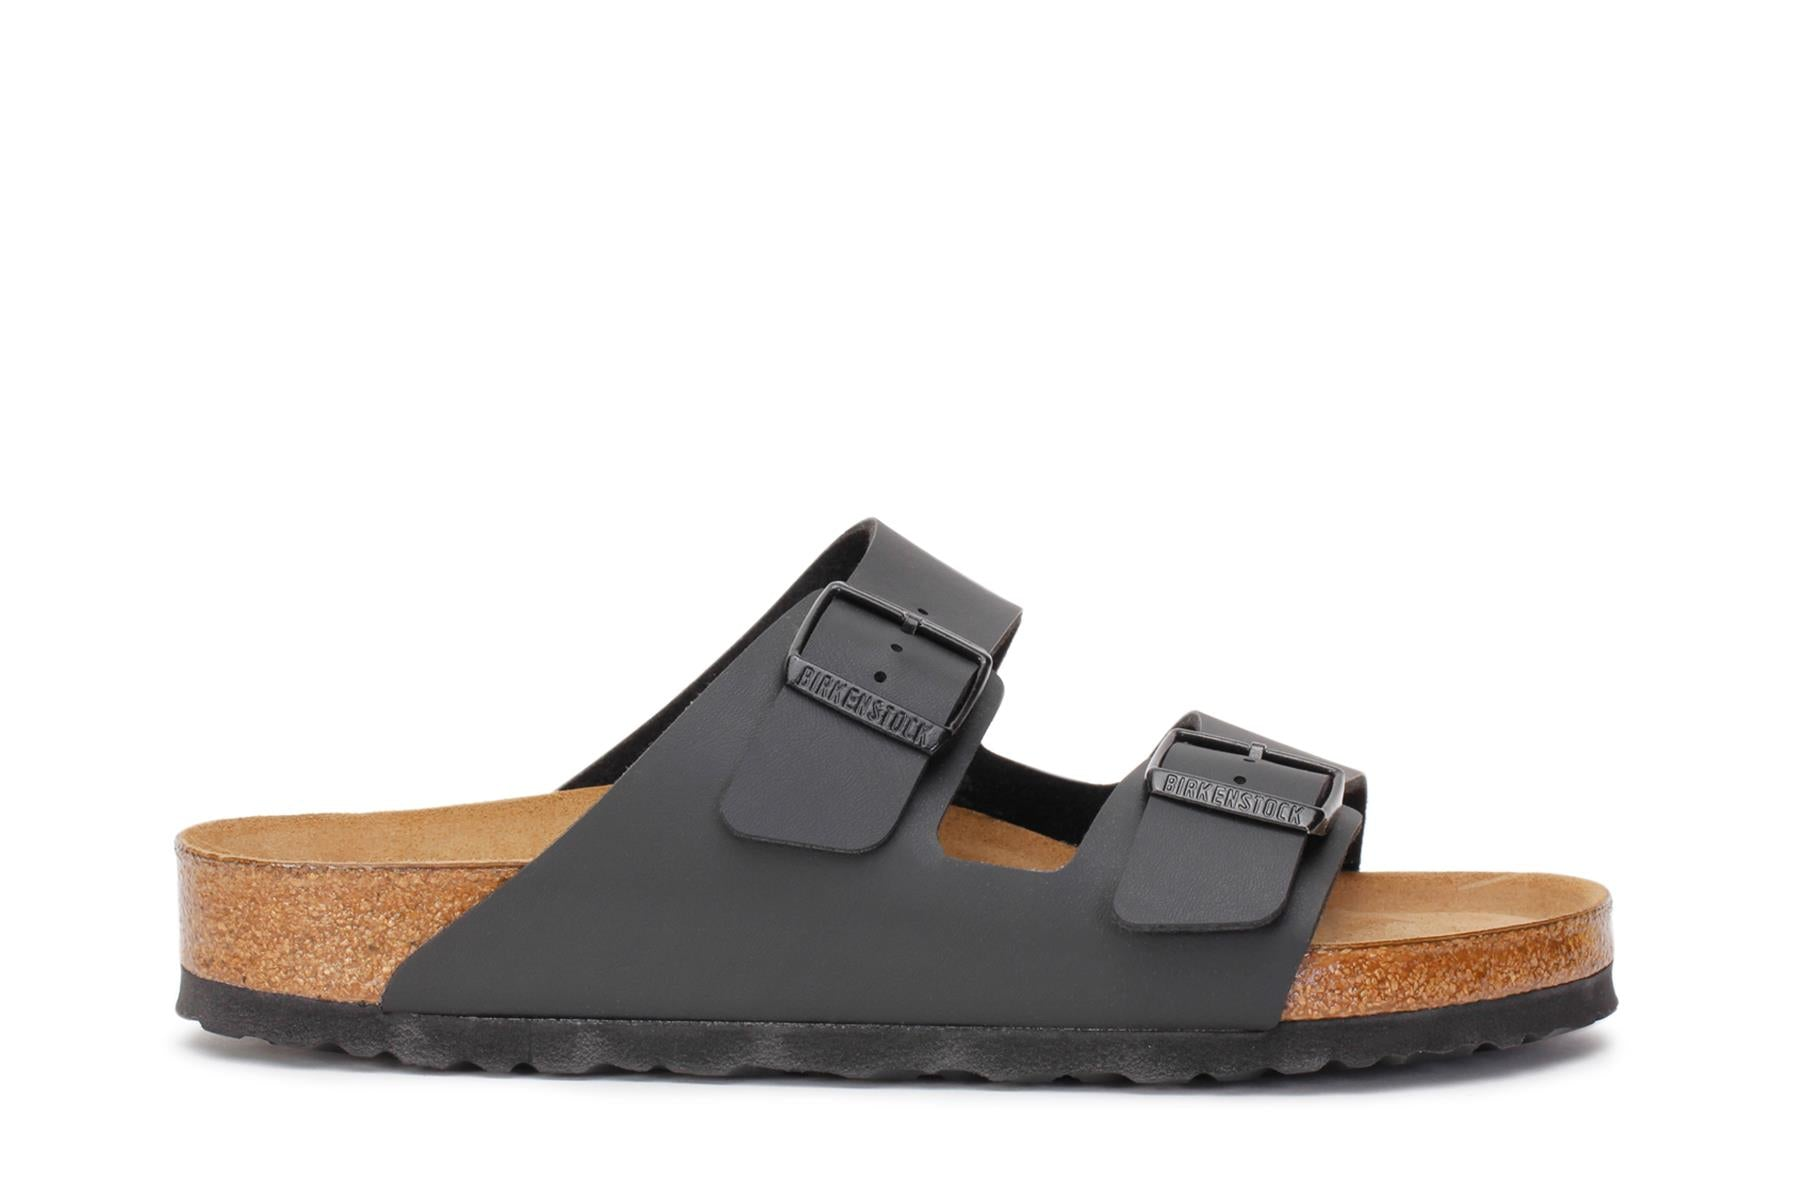 Arizona Birko-Flor Soft Footbed Birkenstock Sandals